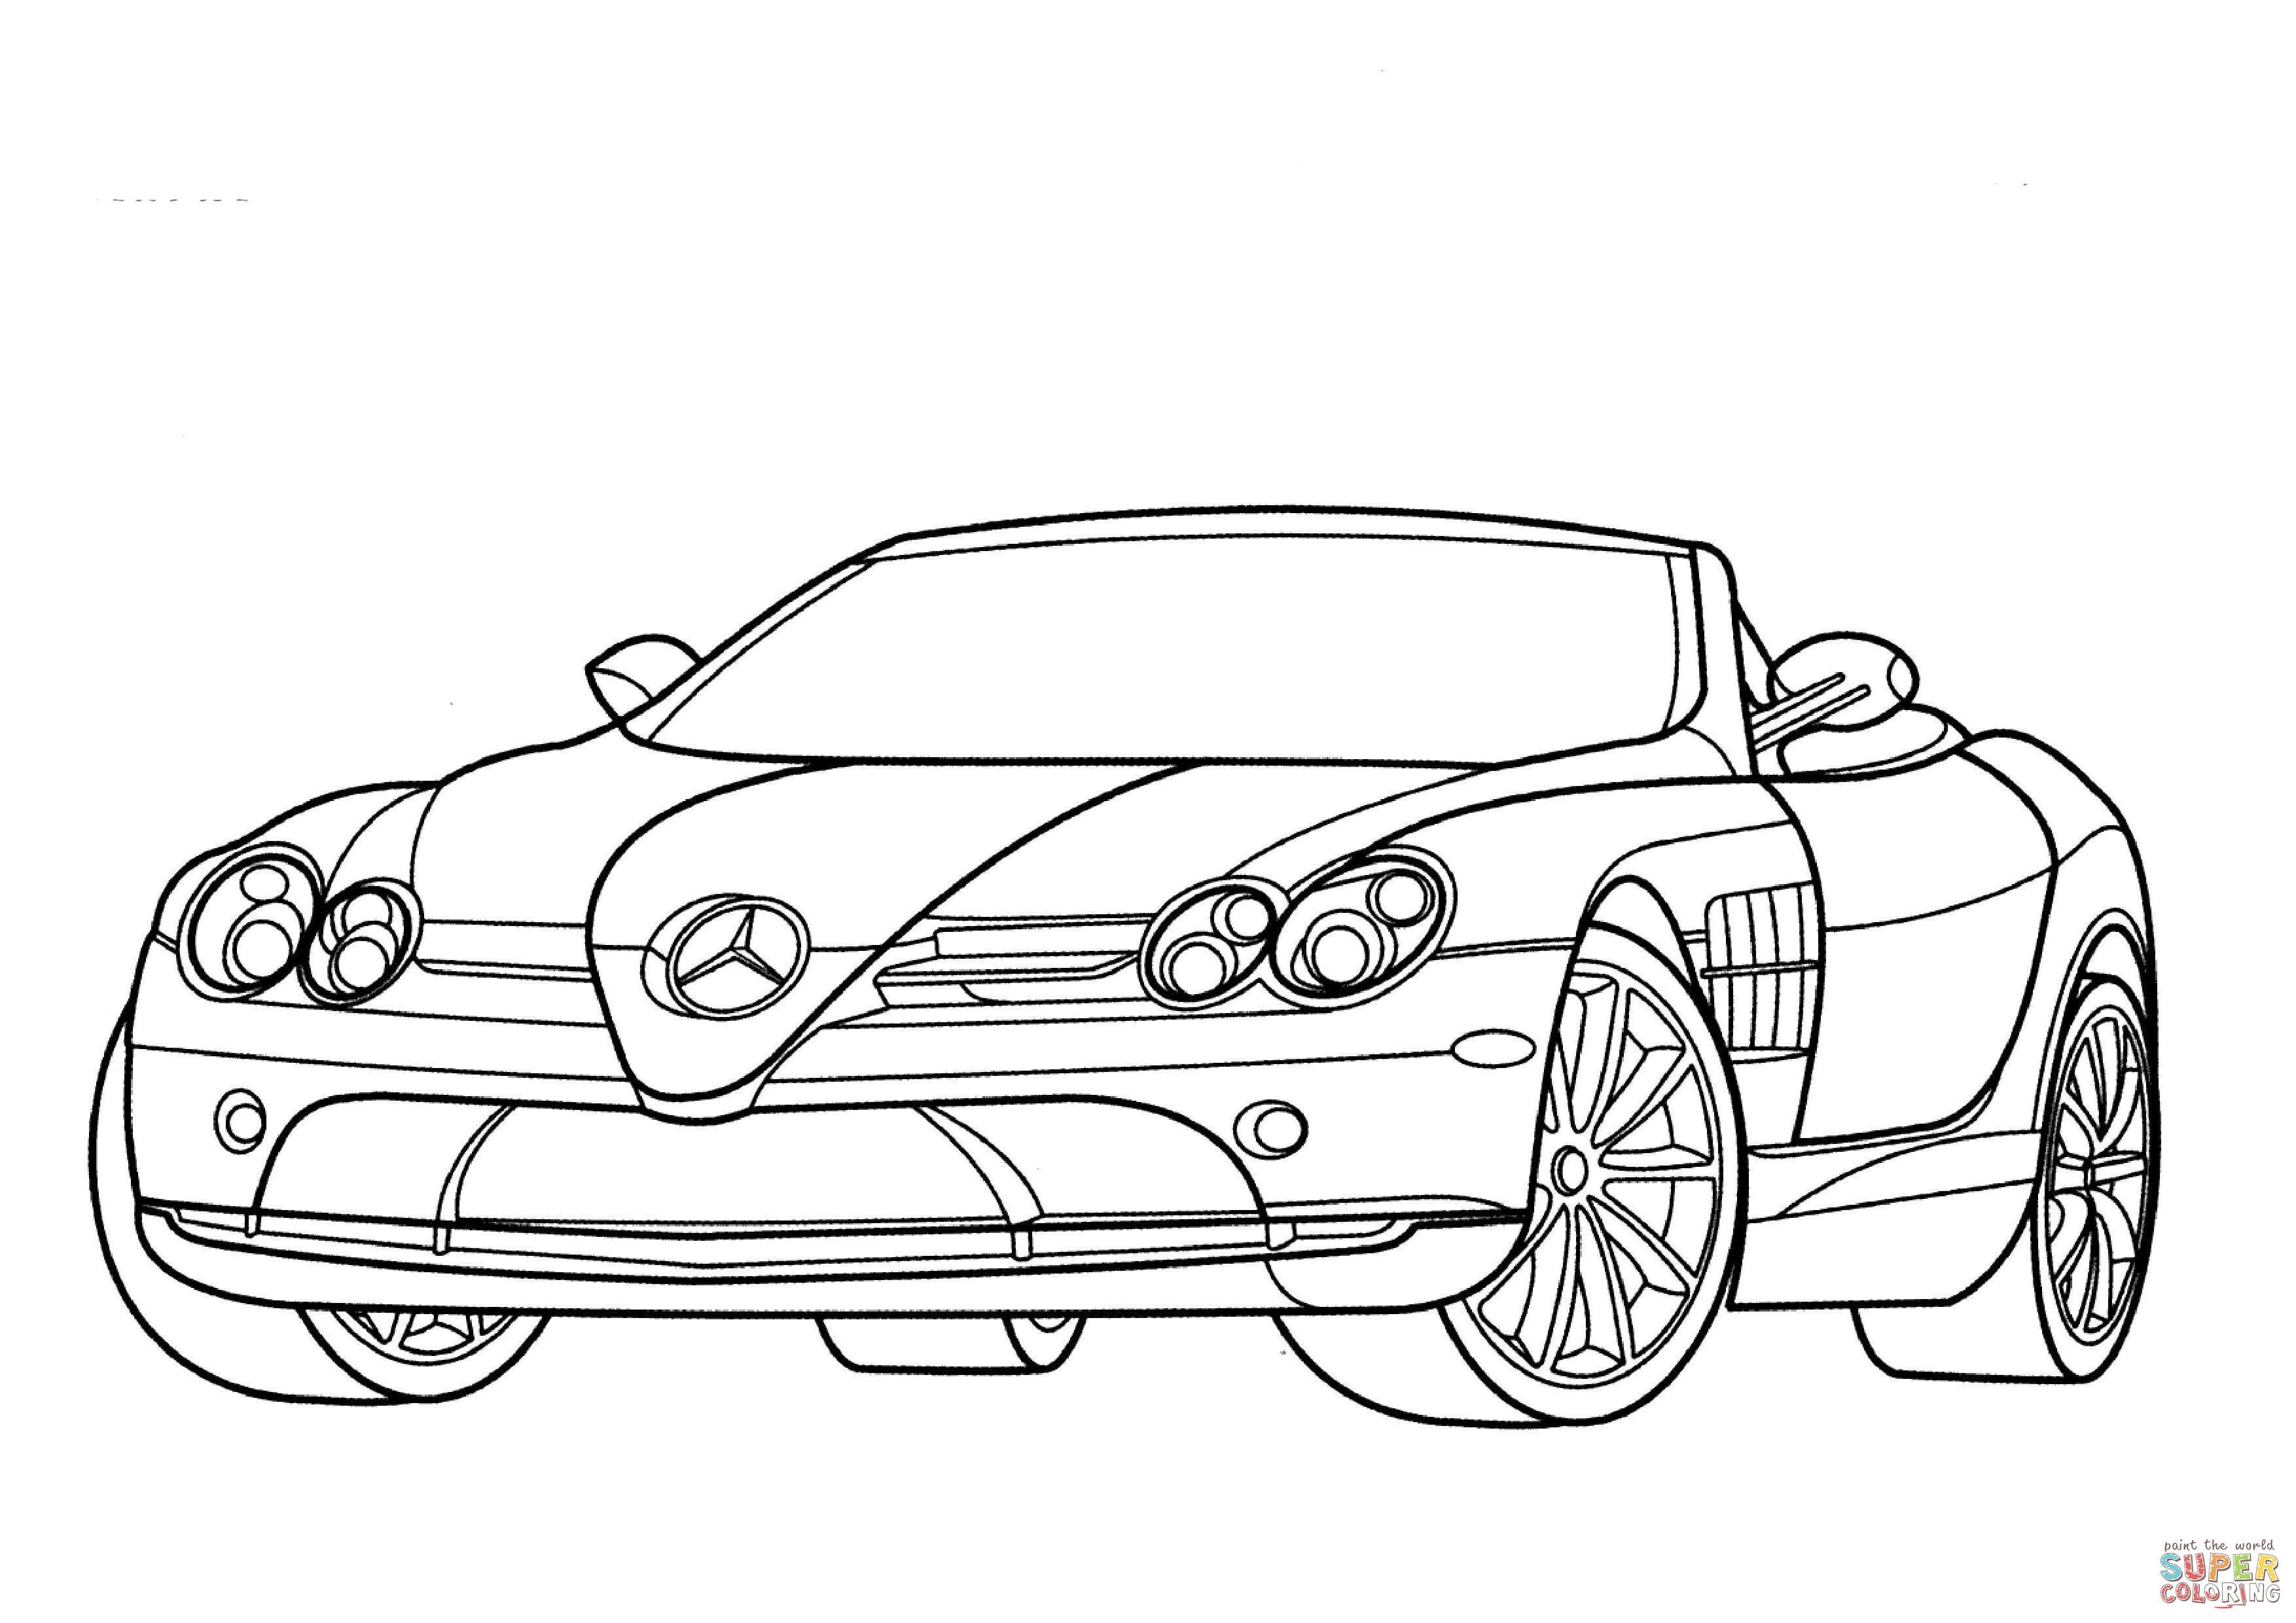 Gtr Drawing At Getdrawings